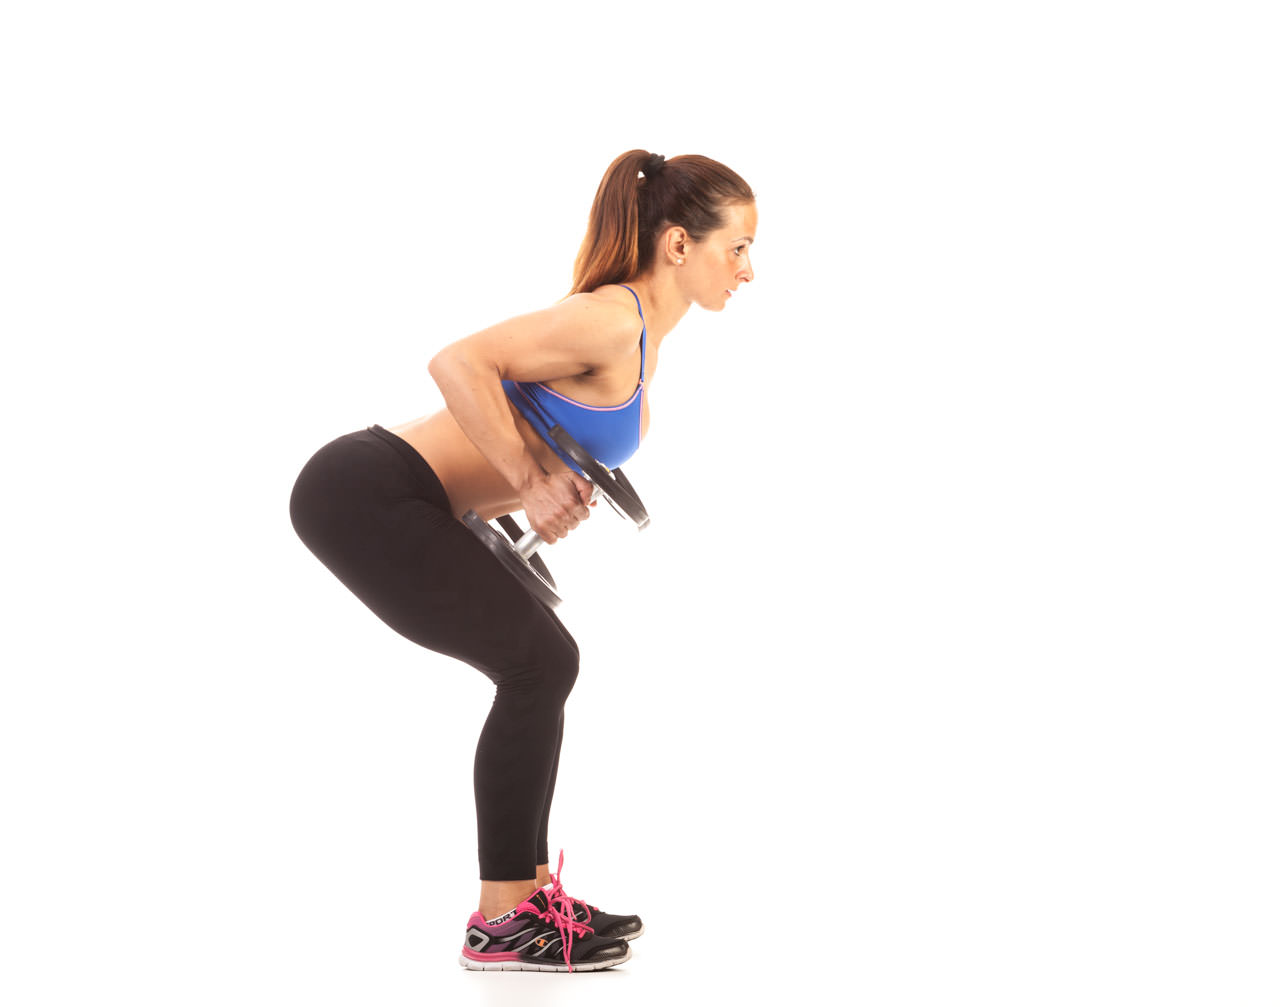 Bent Over Two-Dumbbell Row (with Rotation) frame #2